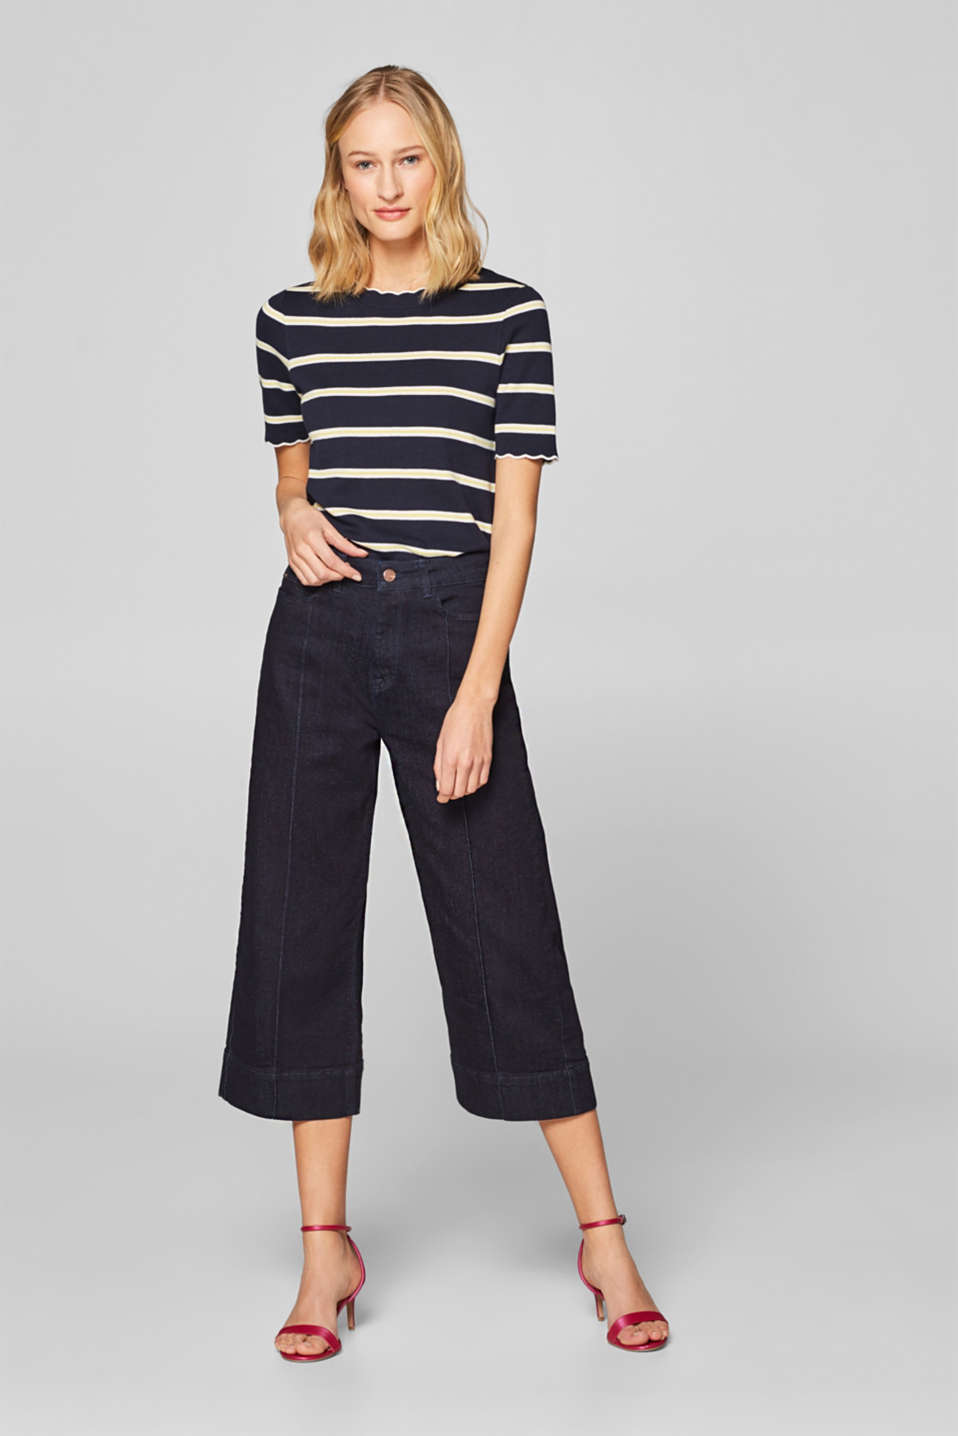 Culottes made of stretch denim containing organic cotton